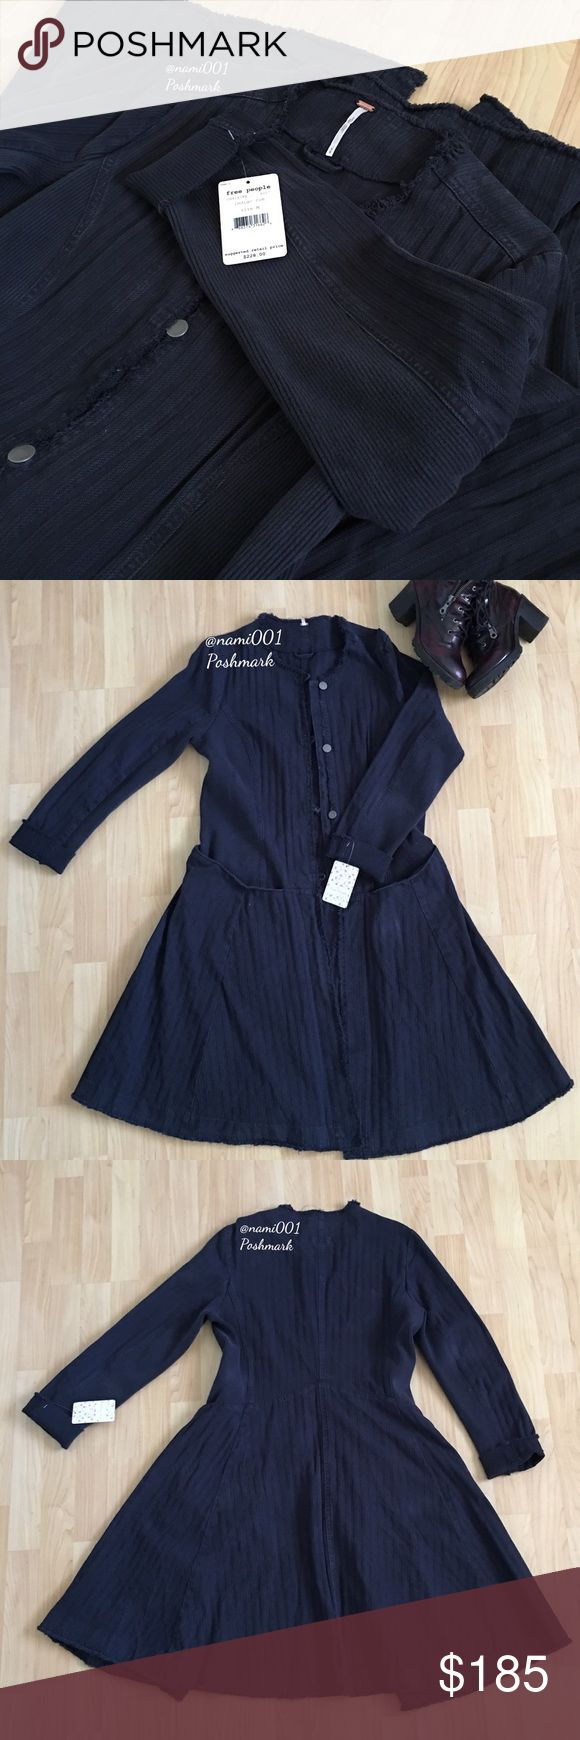 """Free People Duster Fit Flare Jacket Coat Dark Blue This chic flare jacket from Free People has a little bit of that military meets rocker edgy look. Brand new with tags. The flare will instantly slim you. Front buttons with front slip pockets. Made of denim material with stretchy cotton spandex mix material on the sides. Hem has even frays. Measures: 20"""" underarm to underarm. 38"""" shoulder to hem. Make a bold statement with this fashionista jacket. Wear with skinny jeans or mini, either way…"""